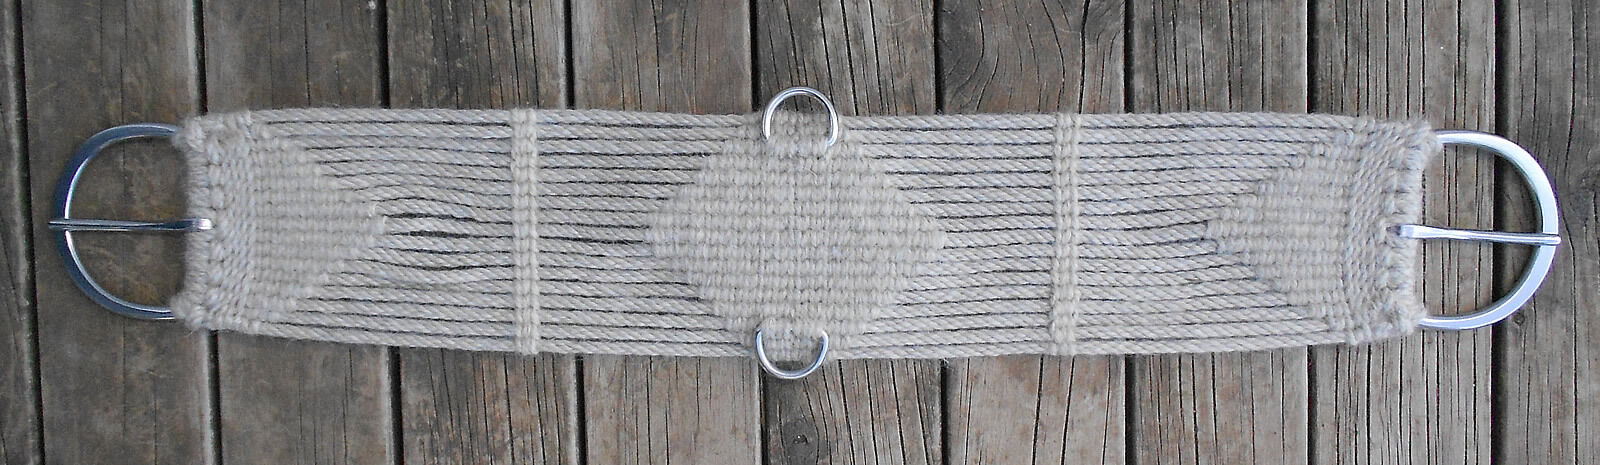 PURE MOHAIR WESTERN GIRTH CINCHES-Aussie Made-SIMPLY THE BEST FOR YOUR HORSE